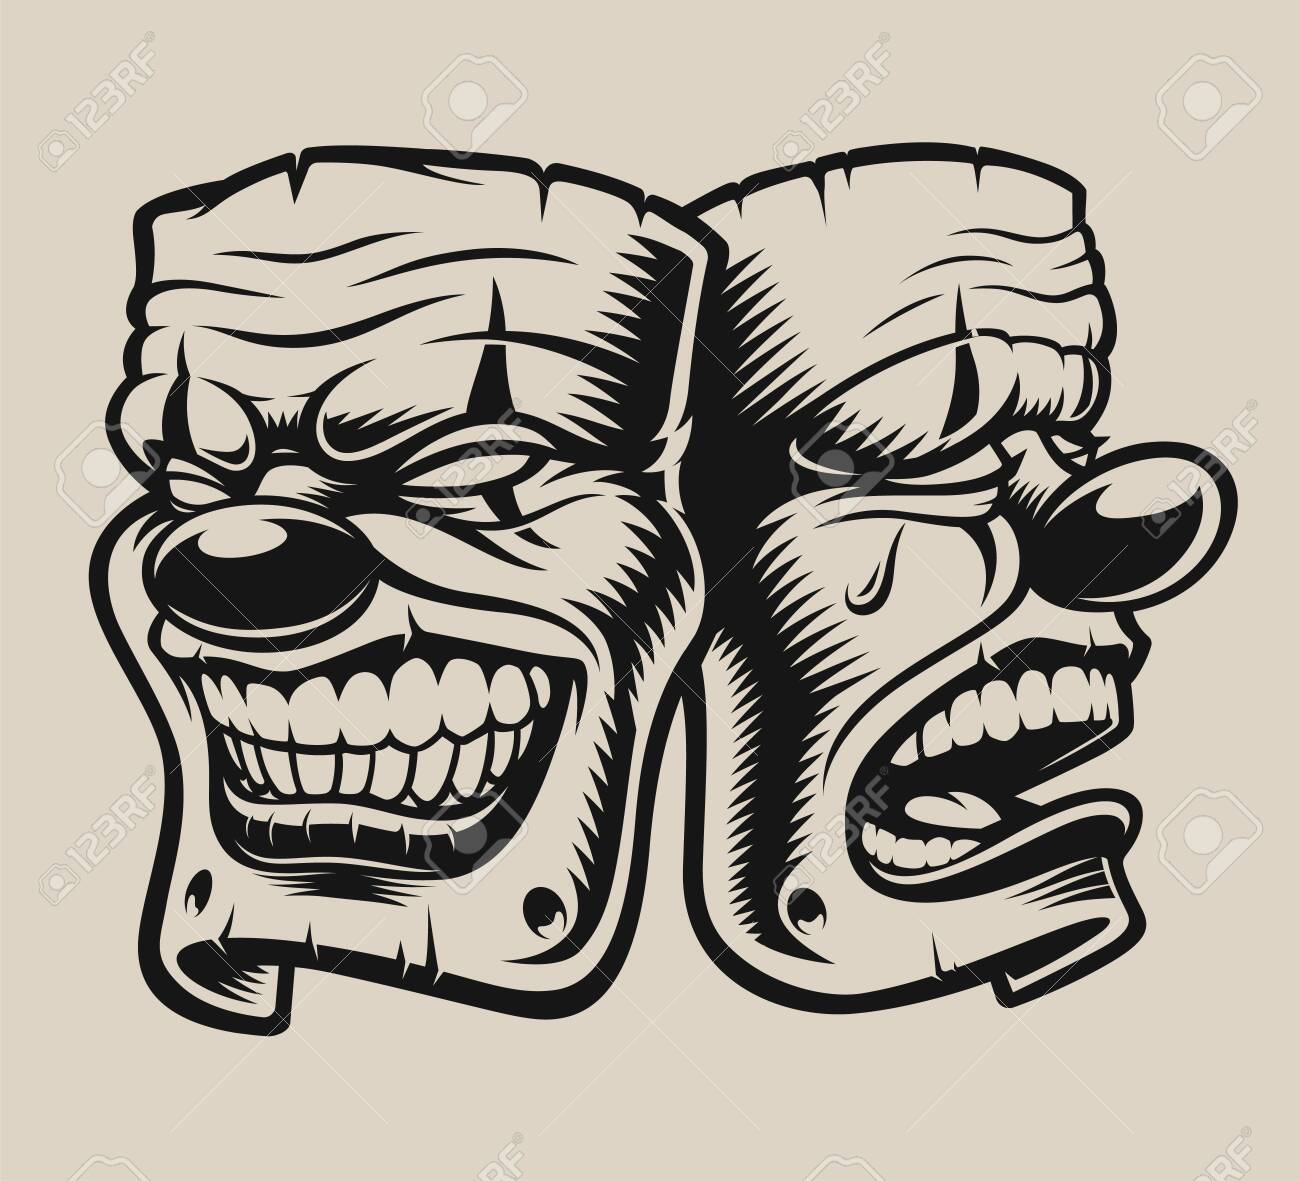 Vector Illustration Of Masks In Chicano Tattoo Style Royalty Free Cliparts Vectors And Stock Illustration Image 139945793